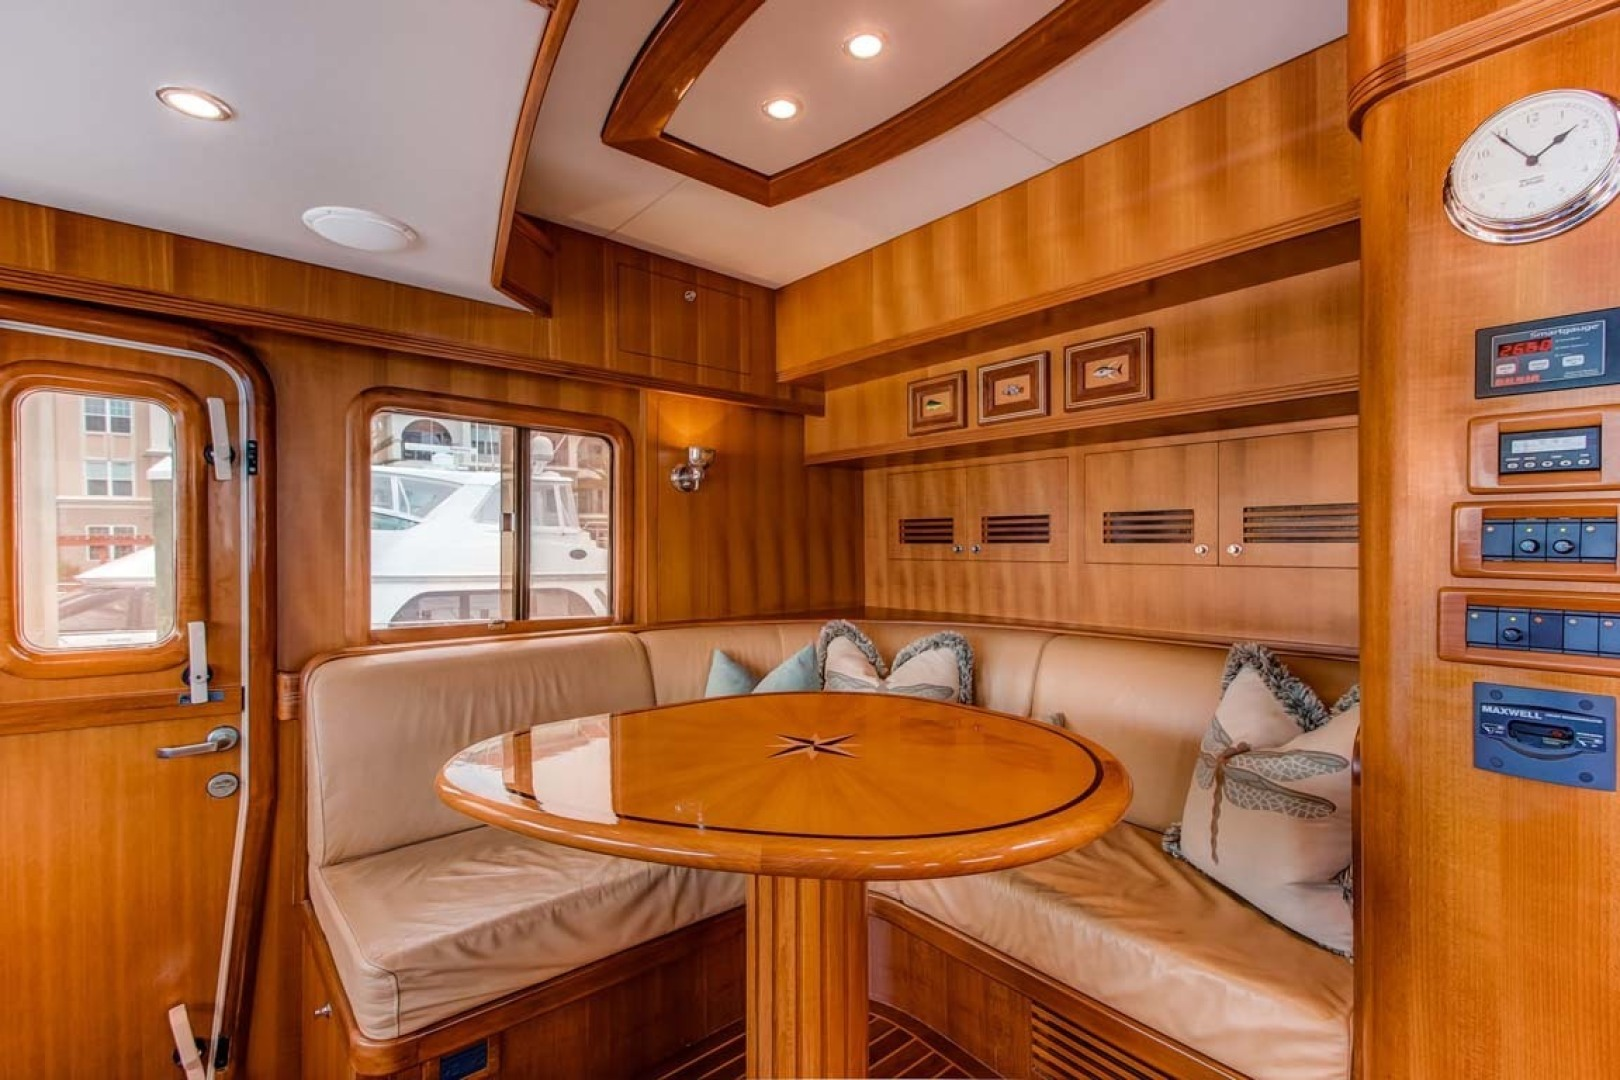 Selene-60 Ocean Trawler 2010-Gypsy Magic Jacksonville-Florida-United States-Helm+Settee-1346727 | Thumbnail